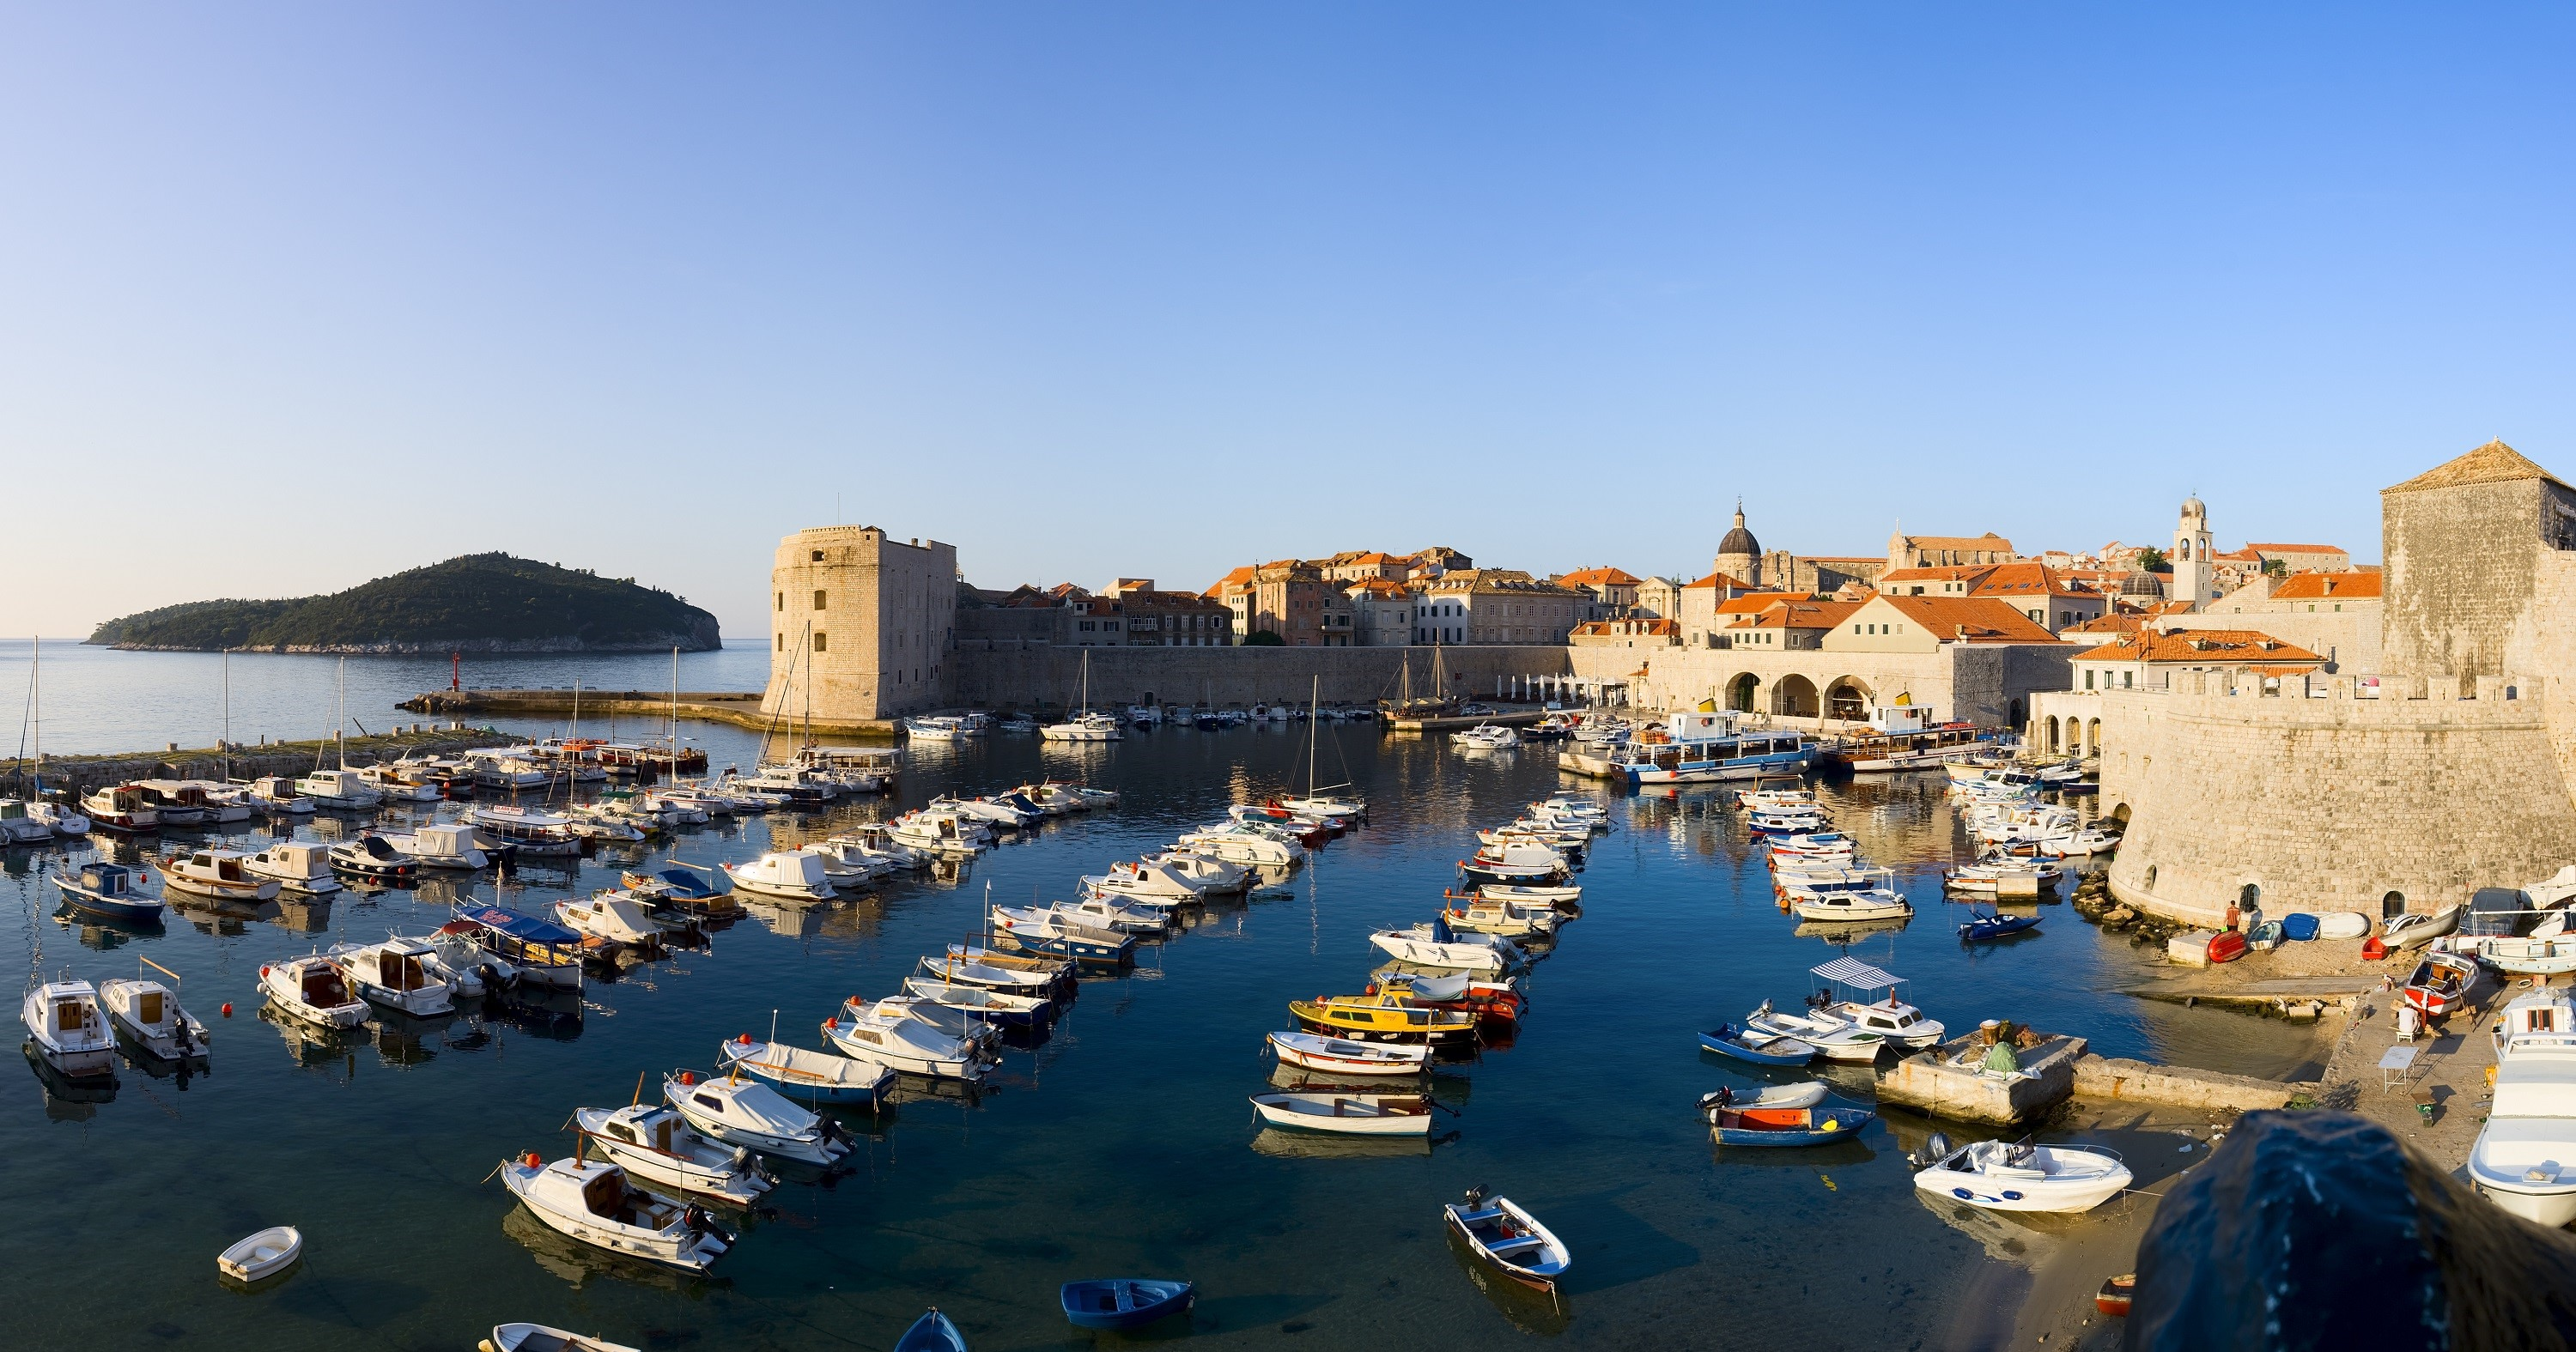 The old port and St John fort in Dubrovnik, Croatia